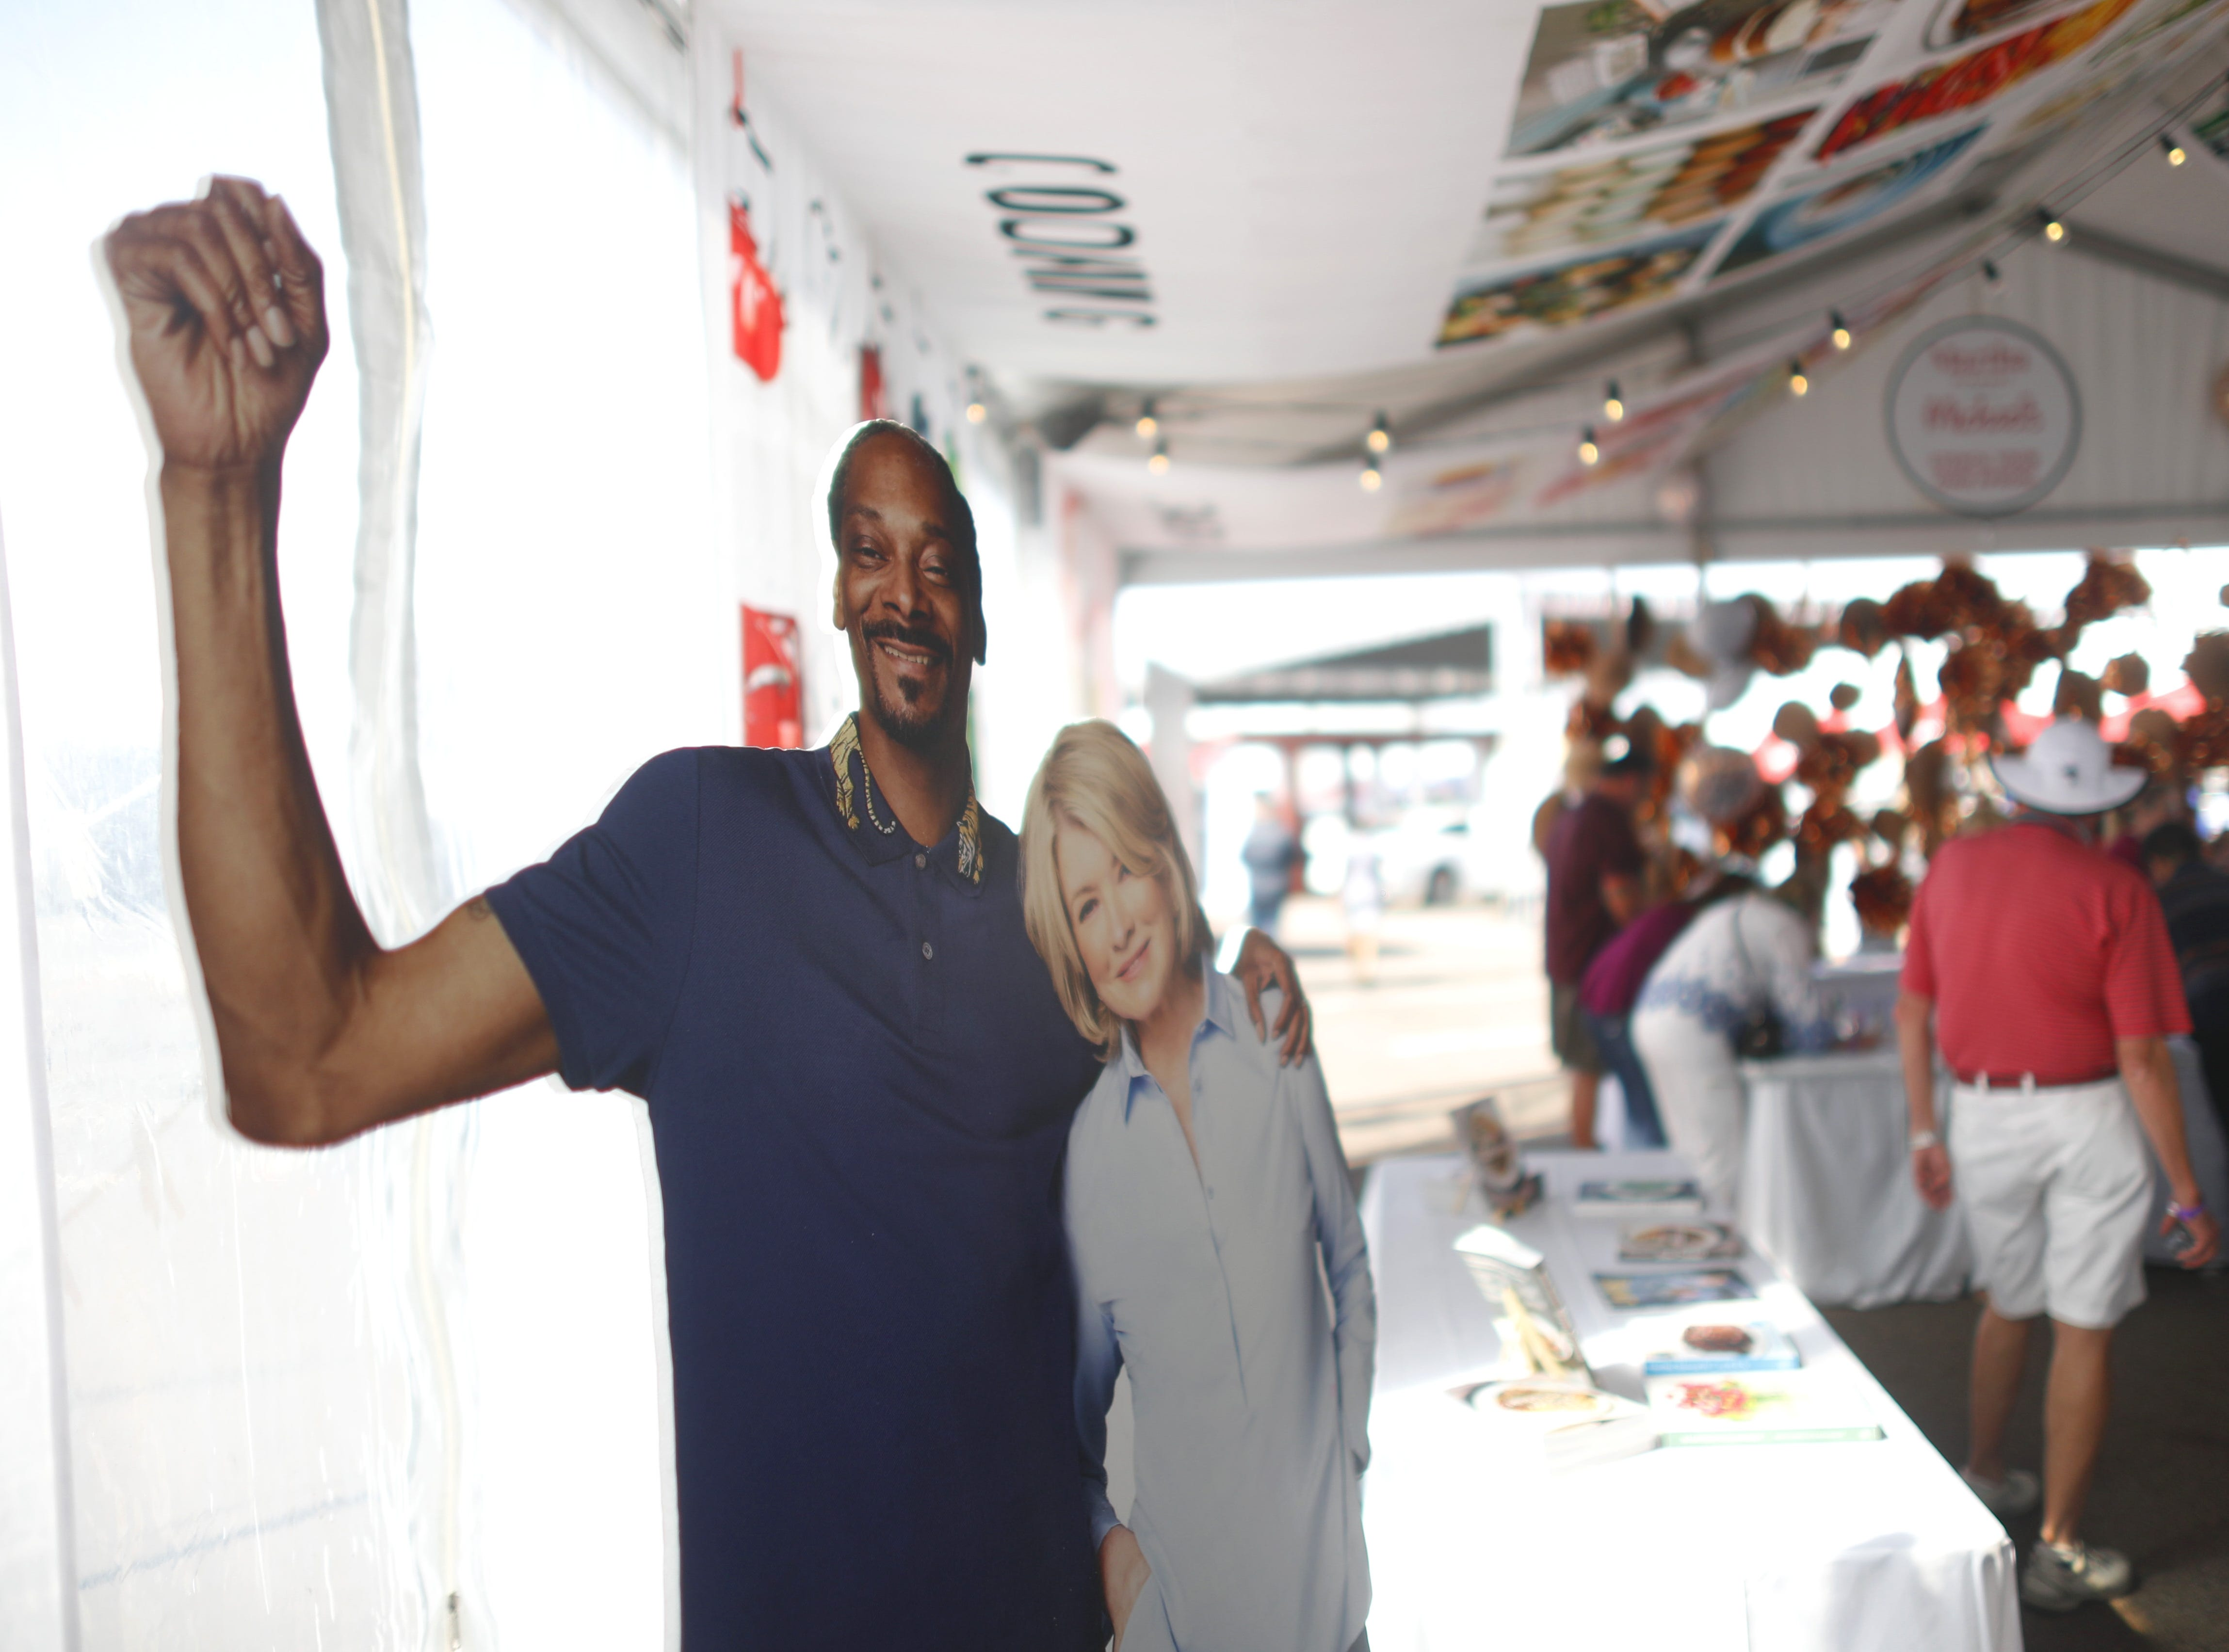 A poster of Martha Stewart and Snoop Dogg greet arrivals during the azcentral Wine & Food Experience at WestWorld of Scottsdale, Ariz. on Nov. 4, 2018.